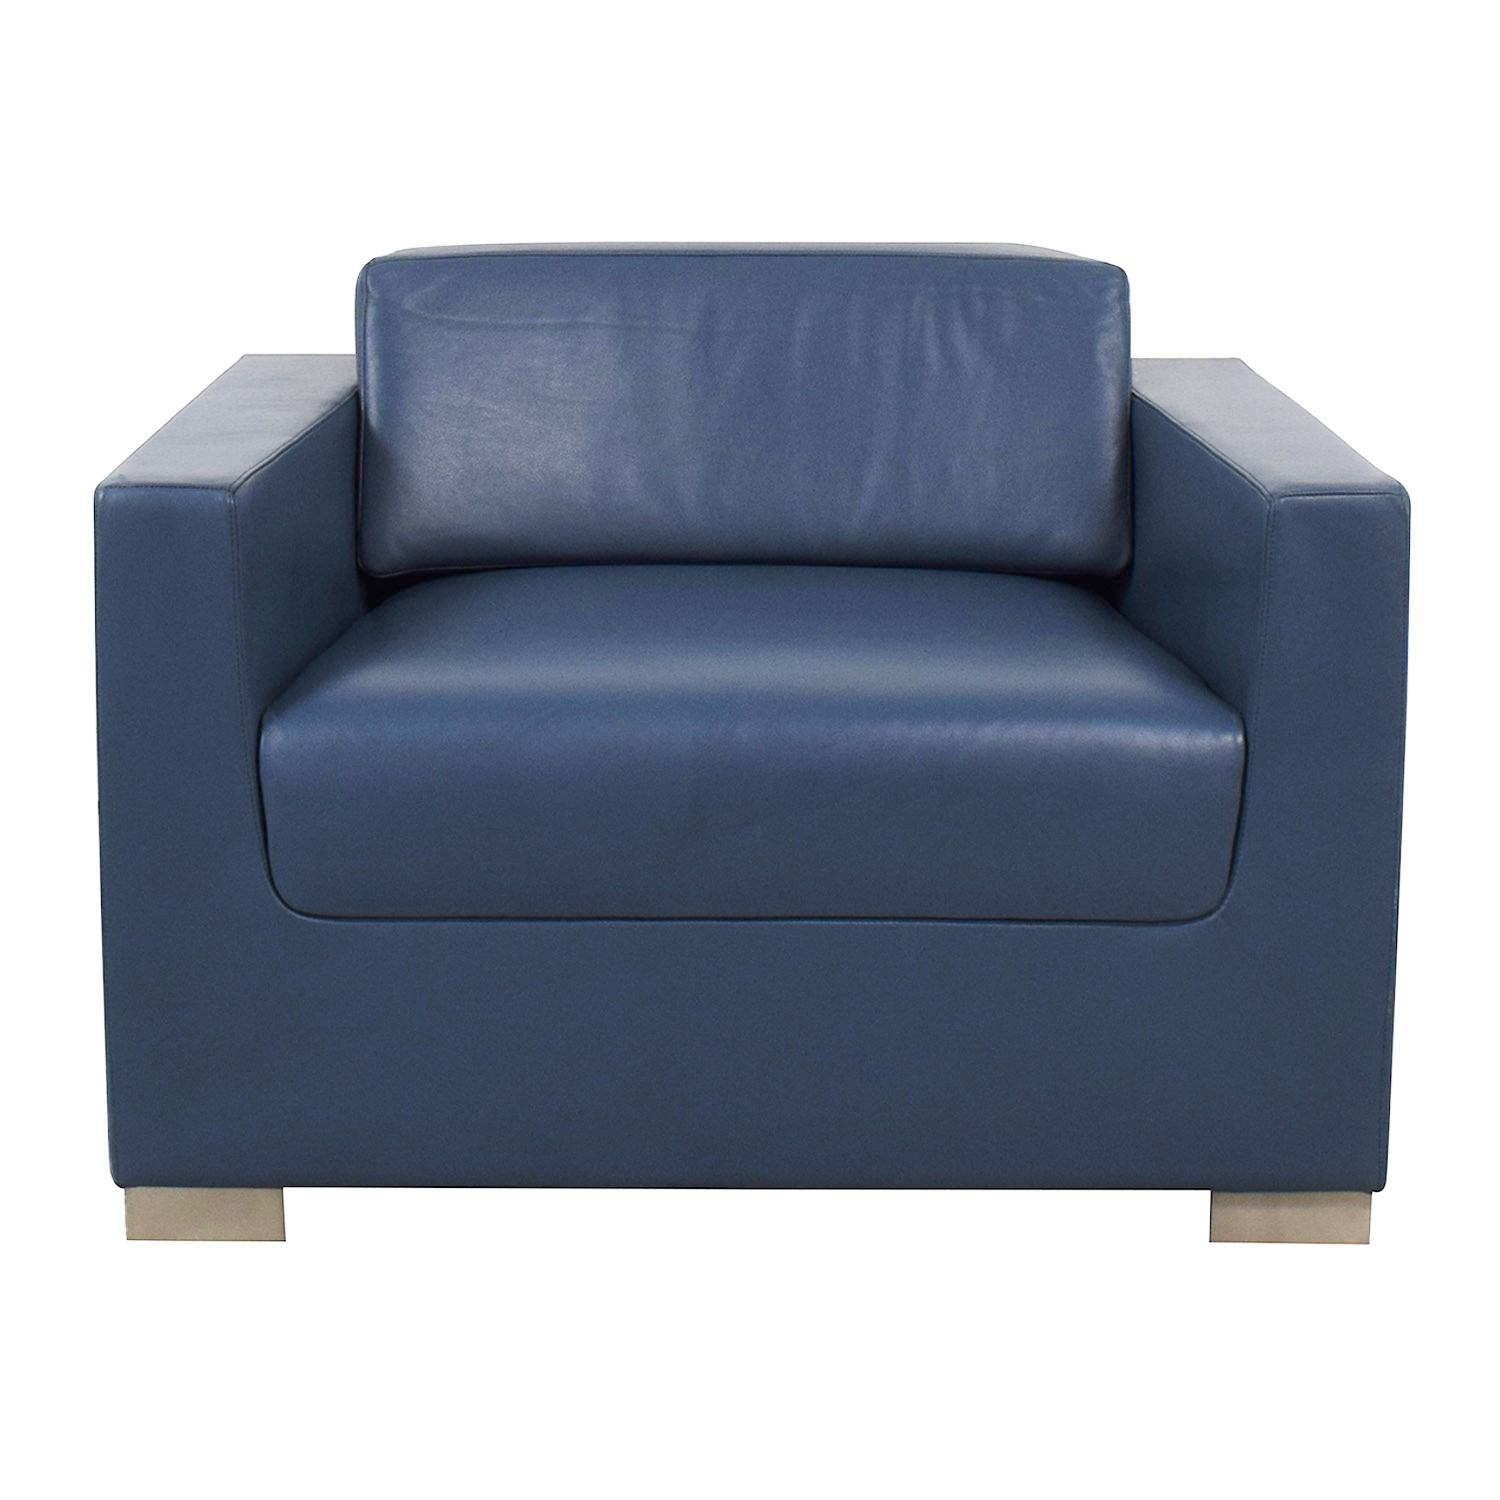 shop Bernhardt Bernhardt Design Blue Leather Arm Chair online